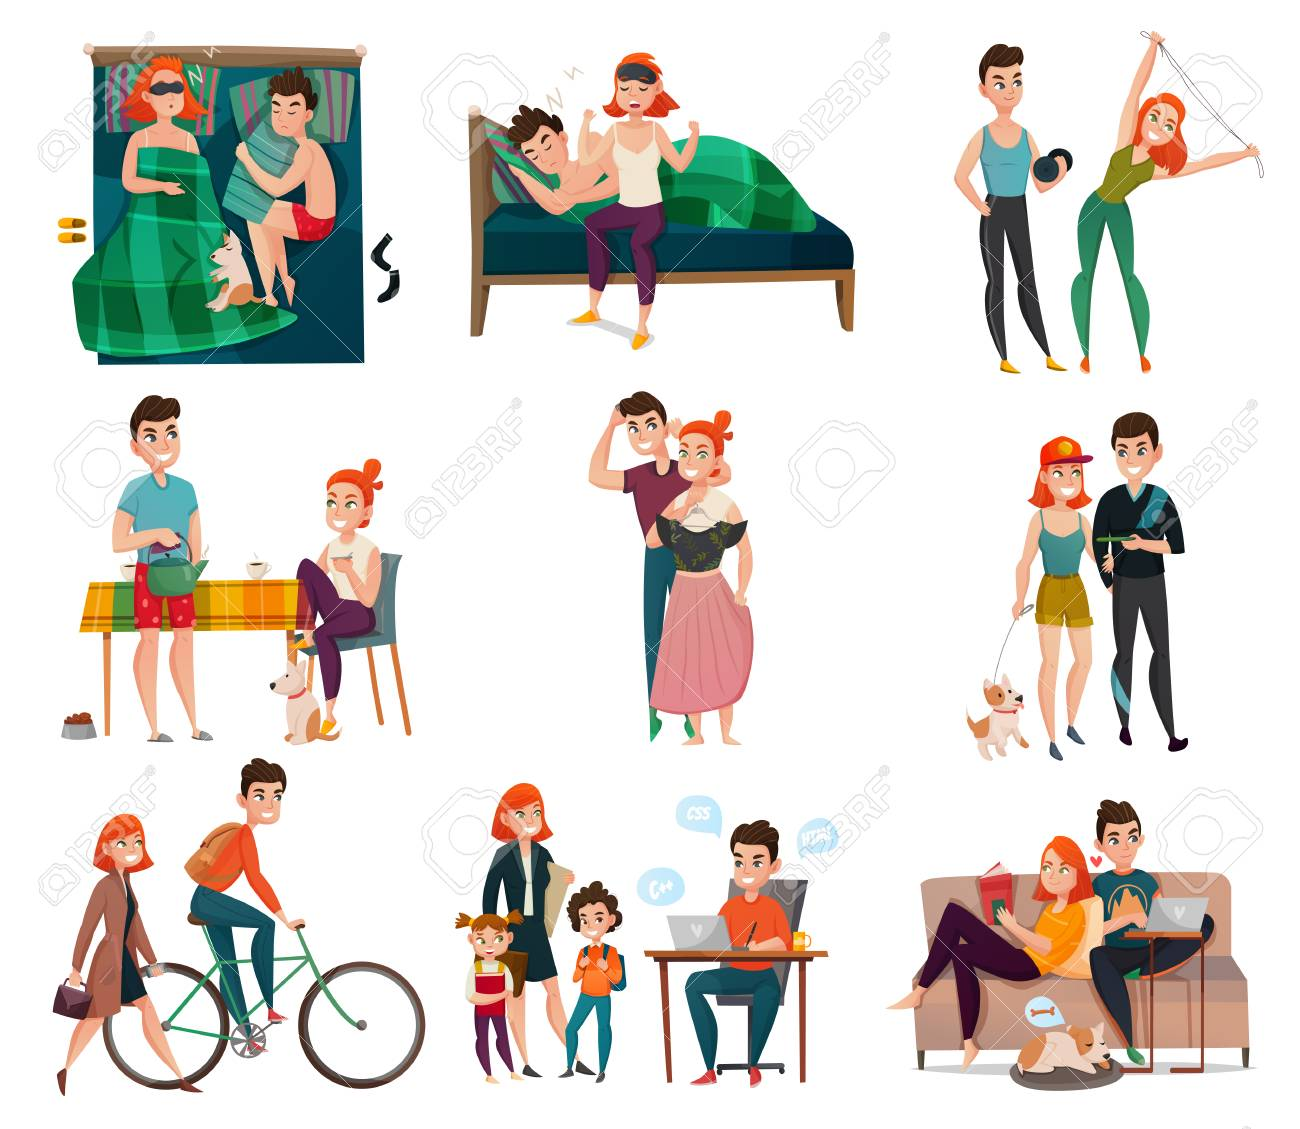 Couple in daily life activities set vector illustration - 93059678